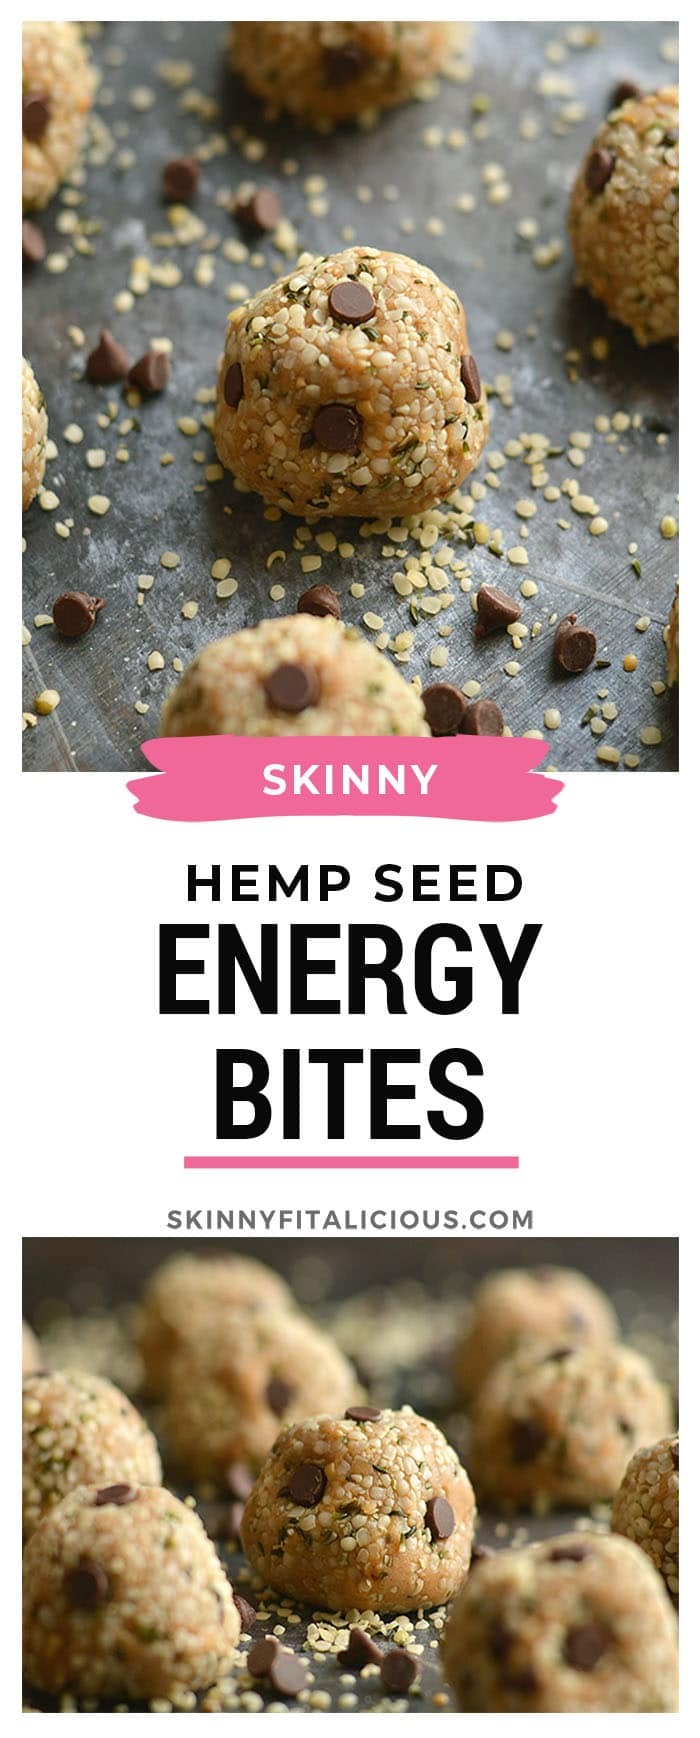 Hemp Seed Energy Bites made with creamy nut butter, chocolate and oat flour. High in omega-3 and low in sugar, a healthy 125 calorie snack perfect for on the go! Gluten Free + Low Calorie + Vegan